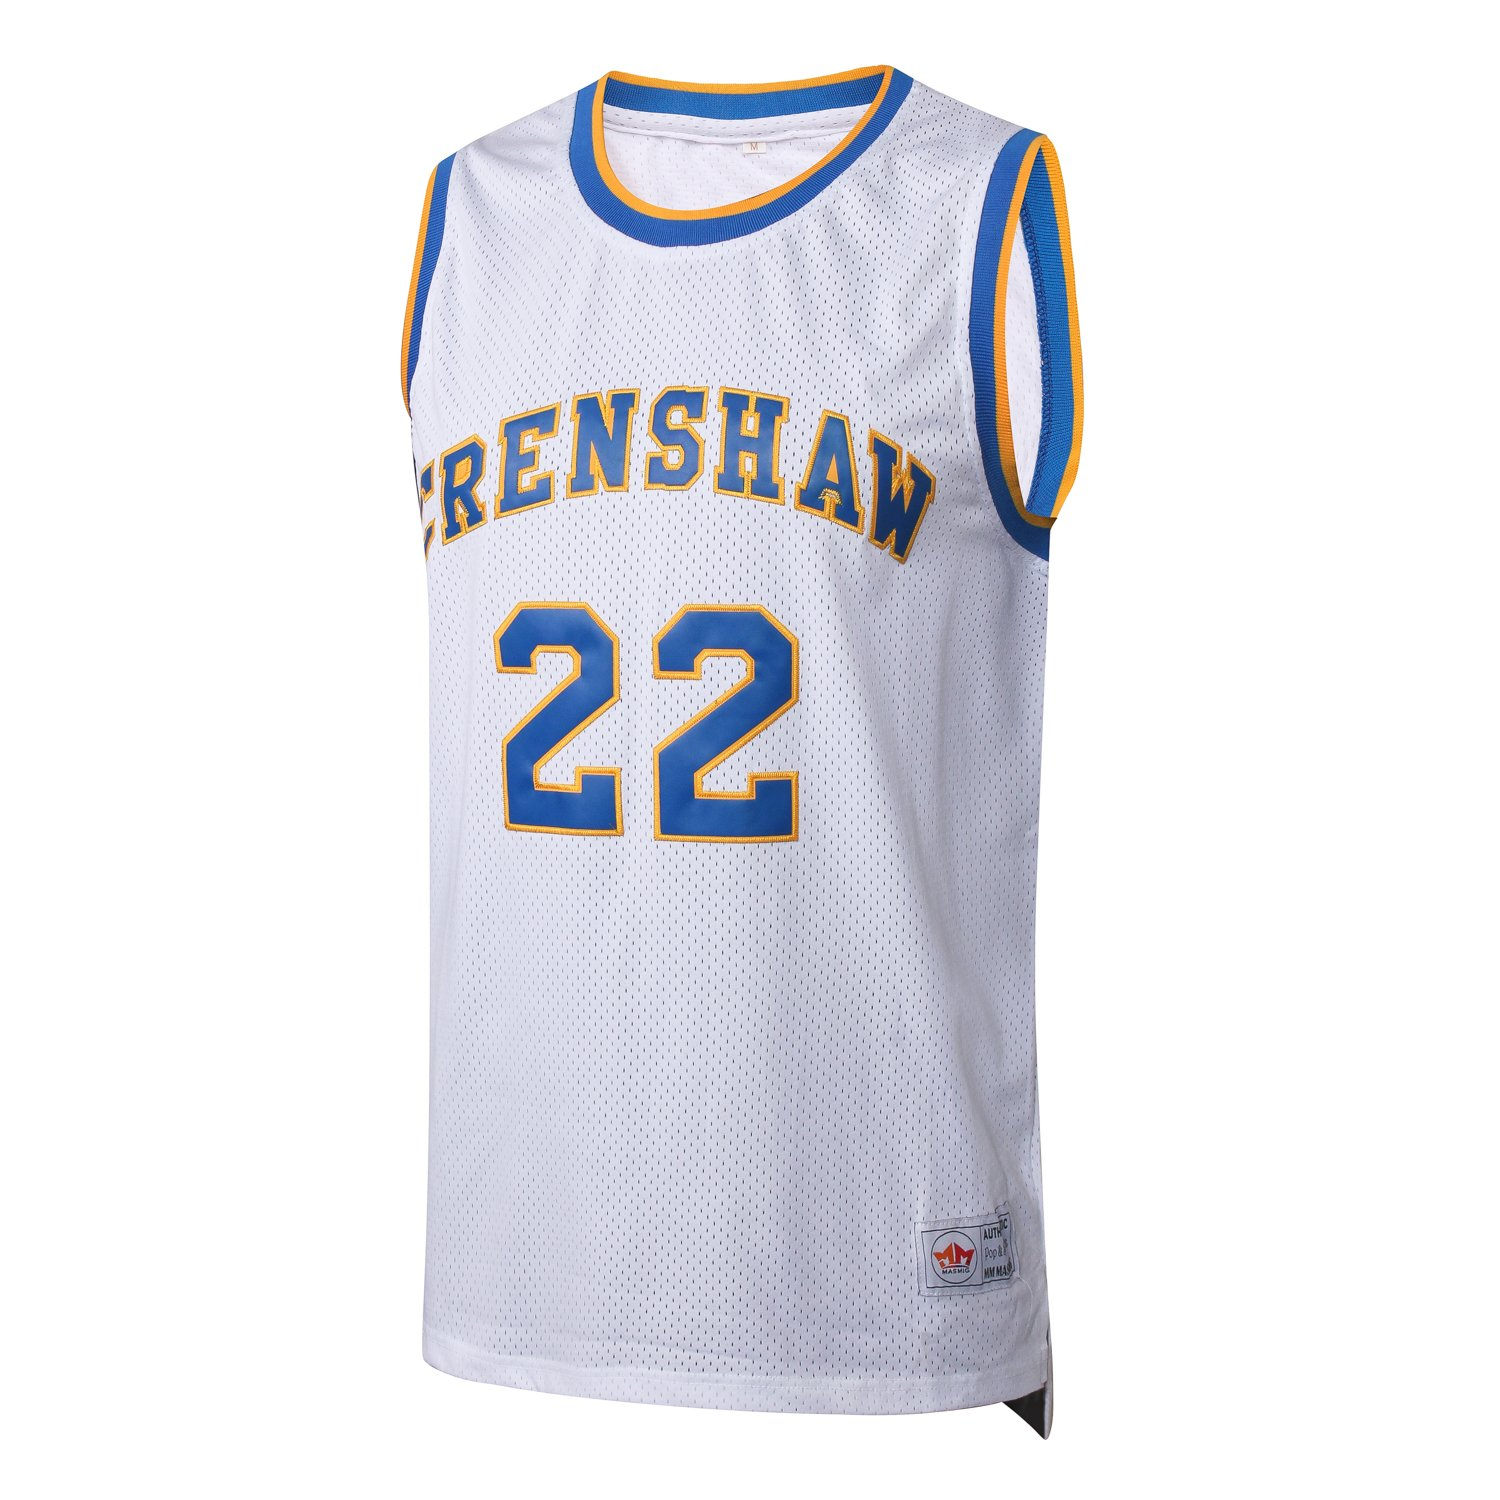 2bf5b801b421 Amazon.com  MM MASMIG Quincy McCall 22 Crenshaw High School Basketball  Jersey Stitched White Love and Basketball S-XXXL White  Clothing